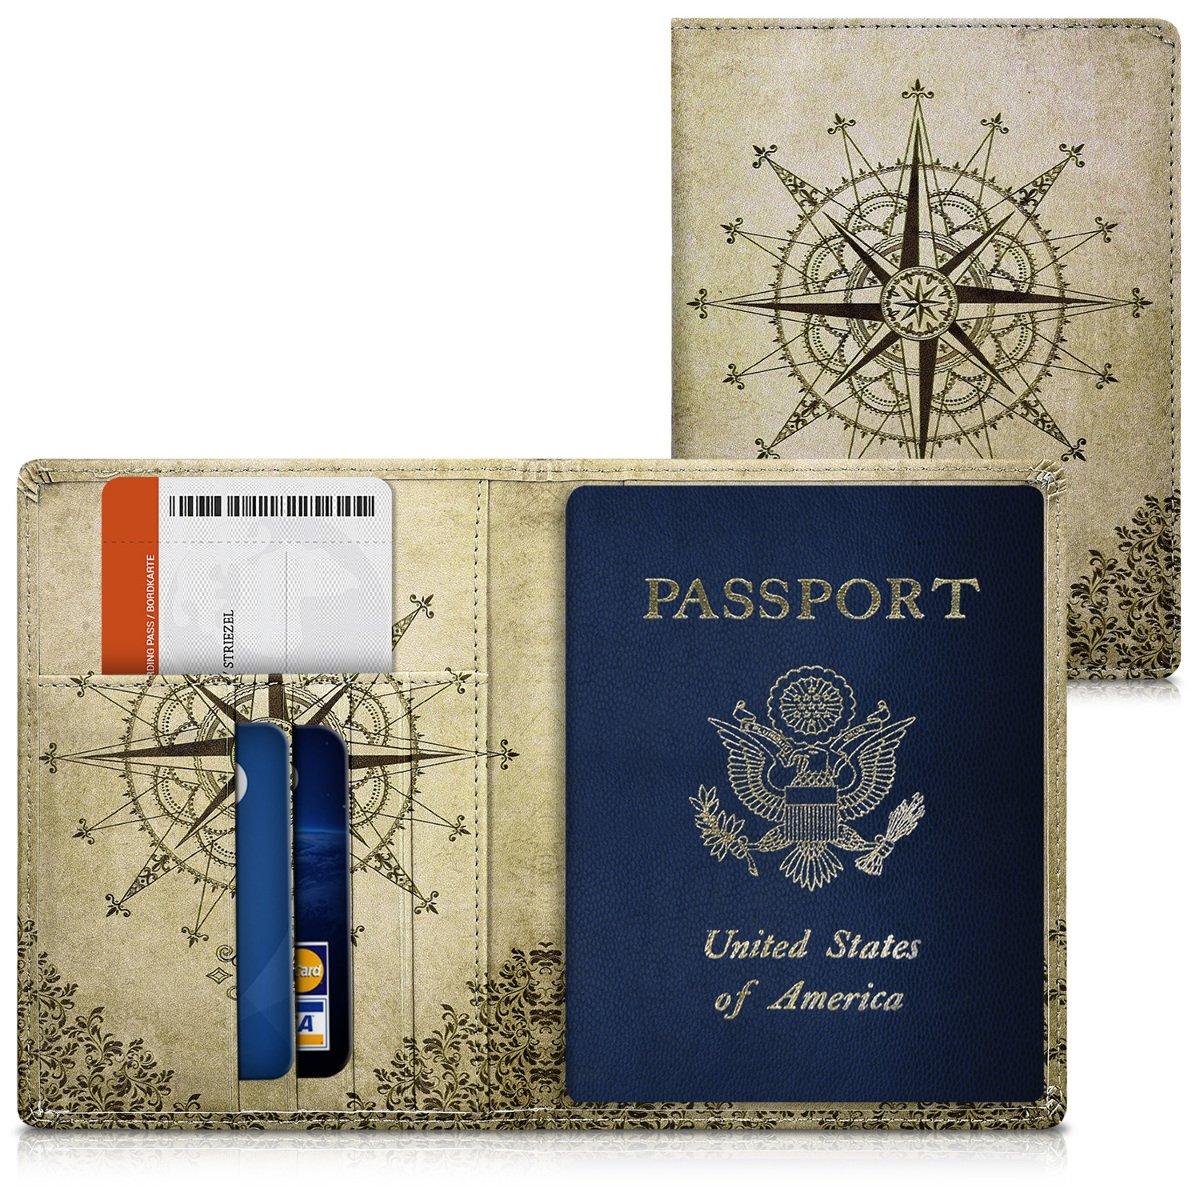 kwmobile Porte-Passeport avec Compartiments Cartes - Portefeuille Passeport - Étui de Protection Simili Cuir Or Rose - avec Emplacement Carte Bleue KW-Commerce 39078.81_m000586